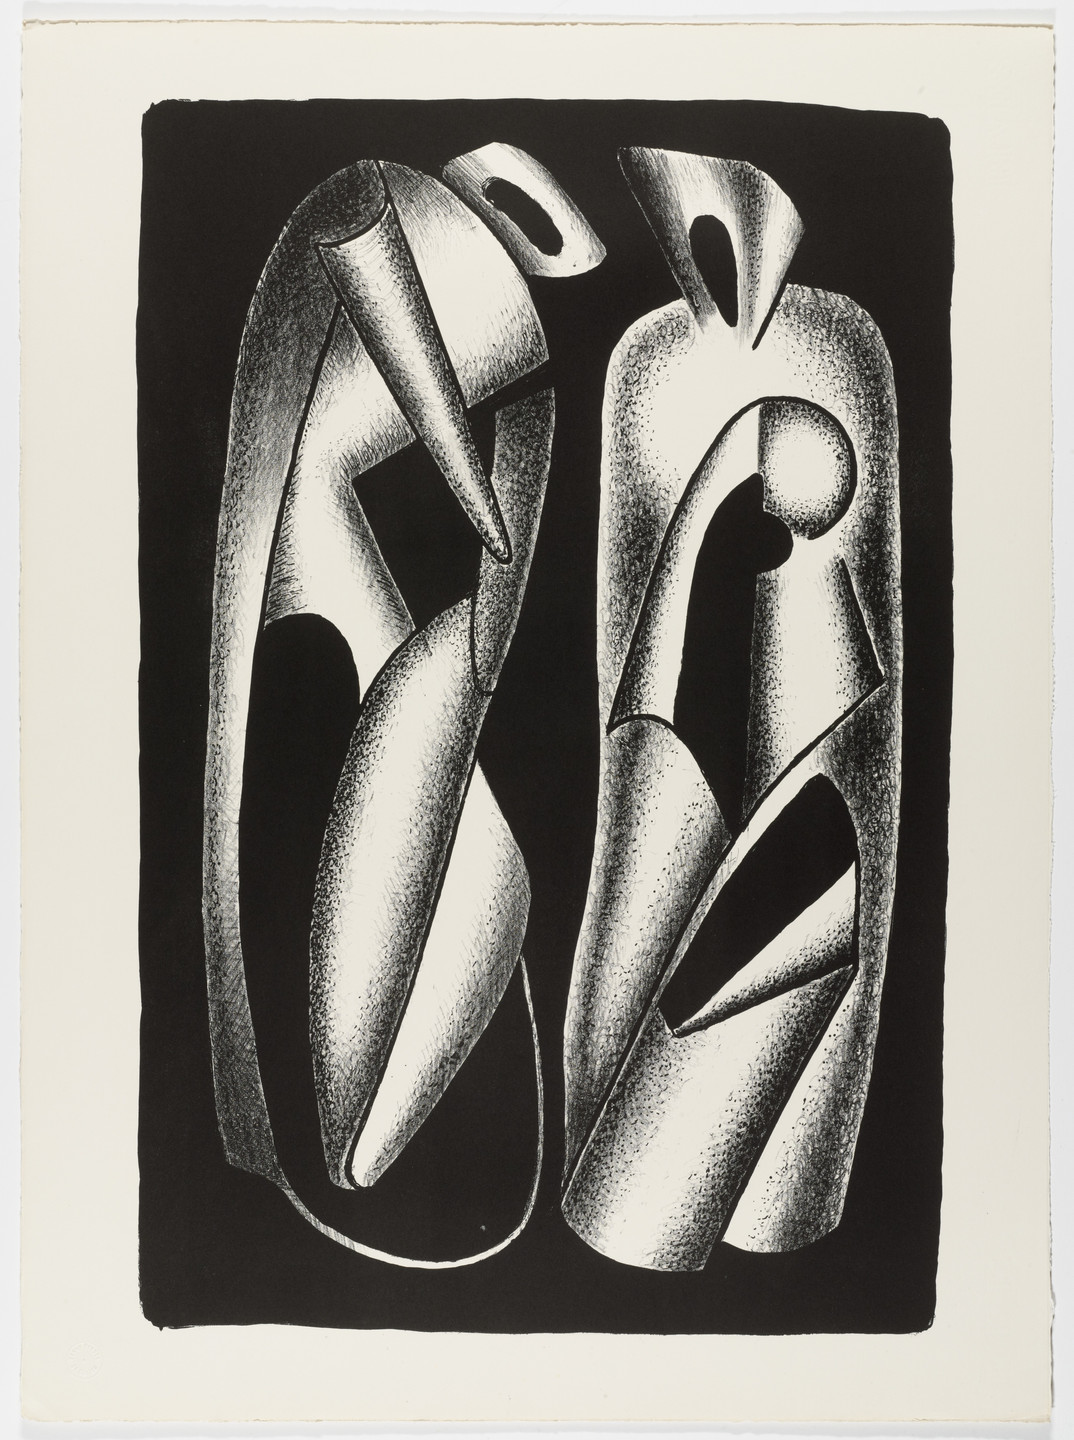 Aleksandr Archipenko. The Luminosity of Forms (Luminosité des formes) from the portfolio Living Forms (Les formes vivantes). 1963